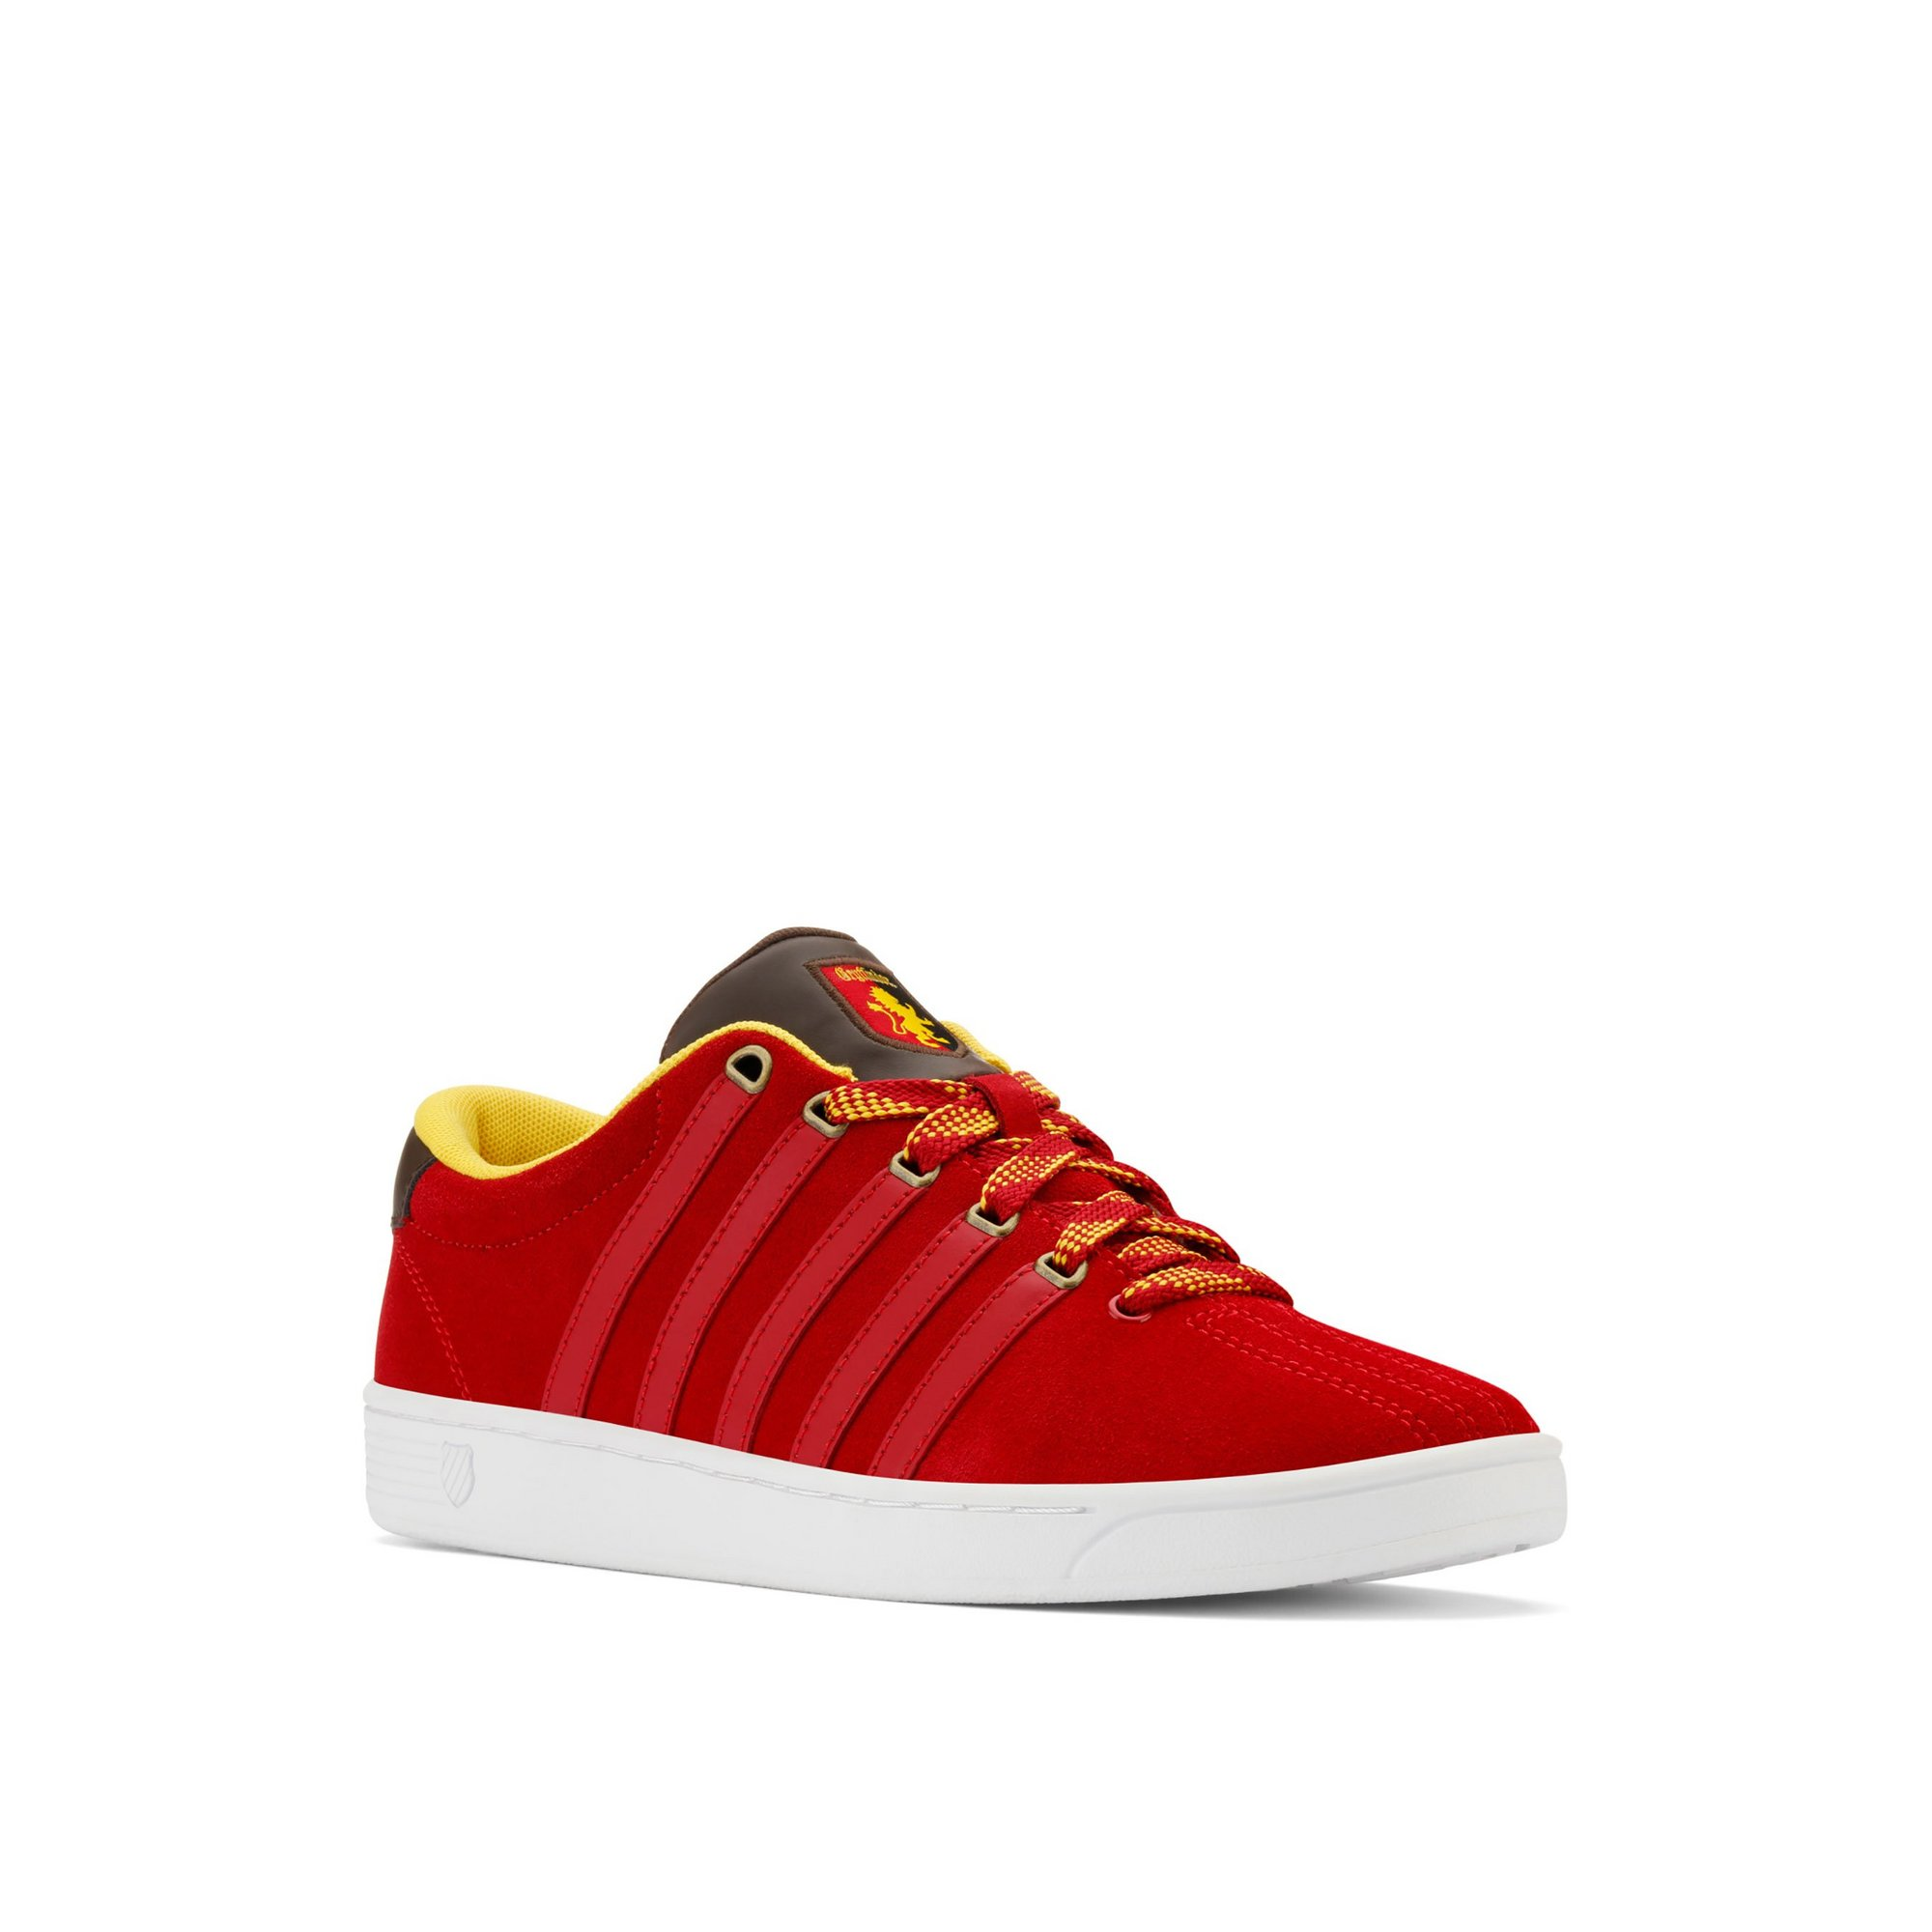 Image of K-Swiss x Harry Potter Court Pro Gryffingdor Trainers